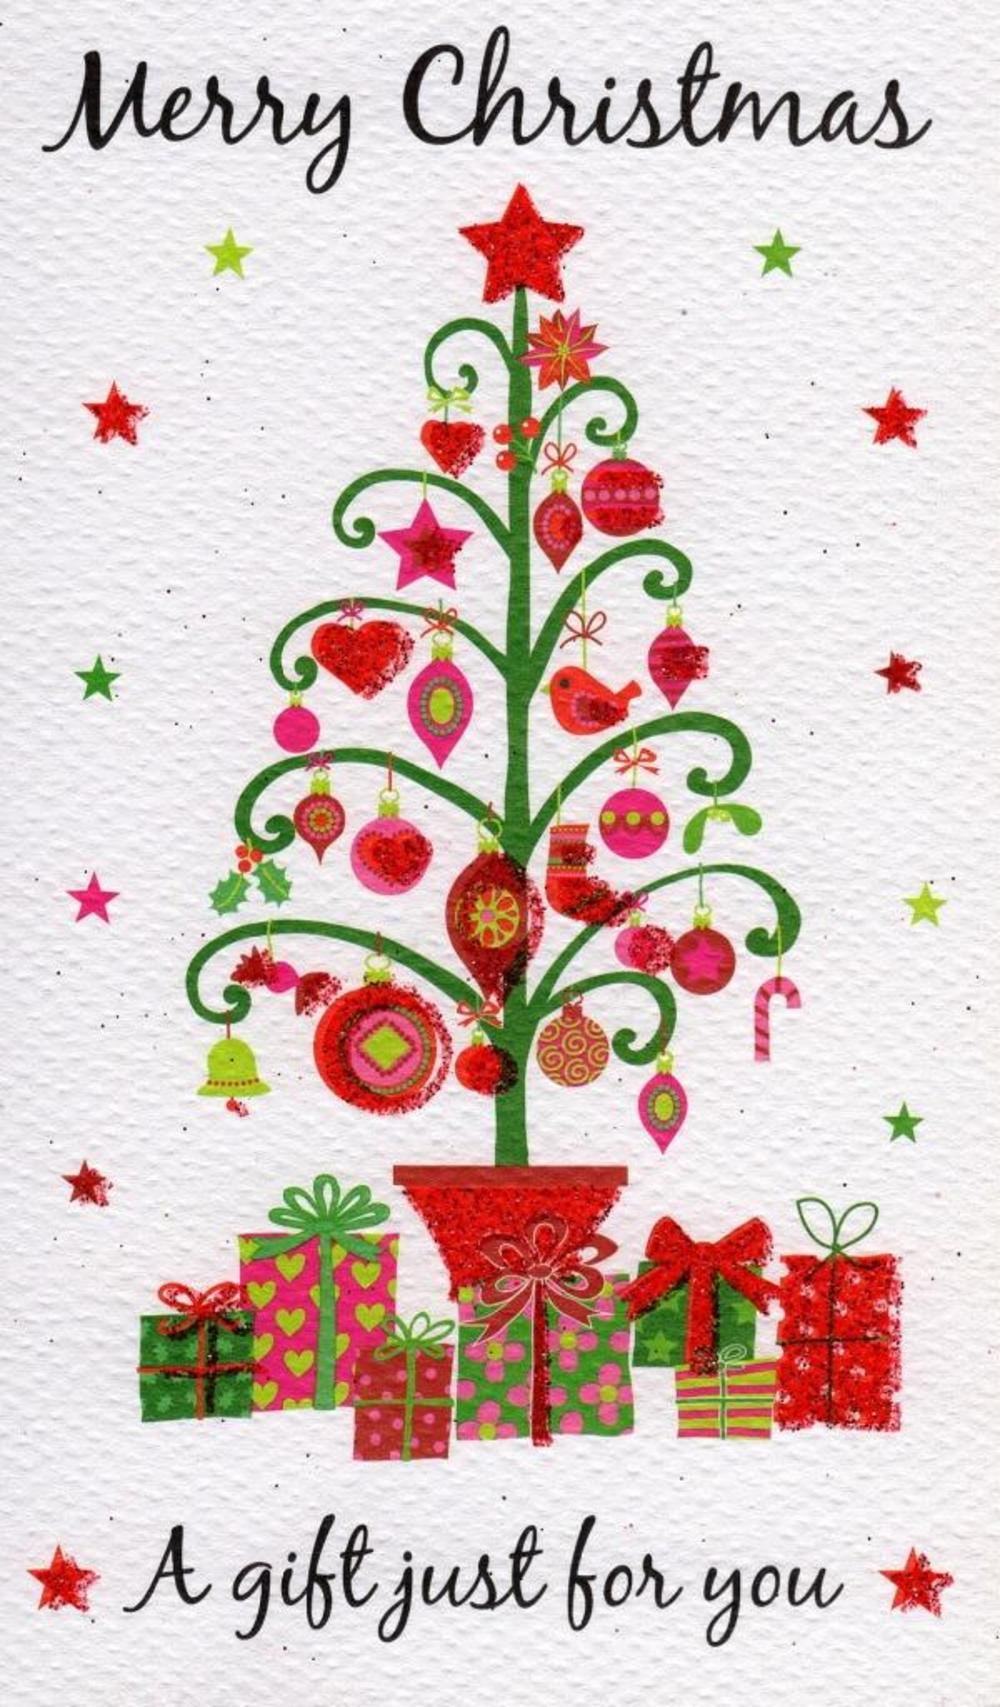 Merry Christmas Gift Moneyholder Christmas Gift Card | Cards